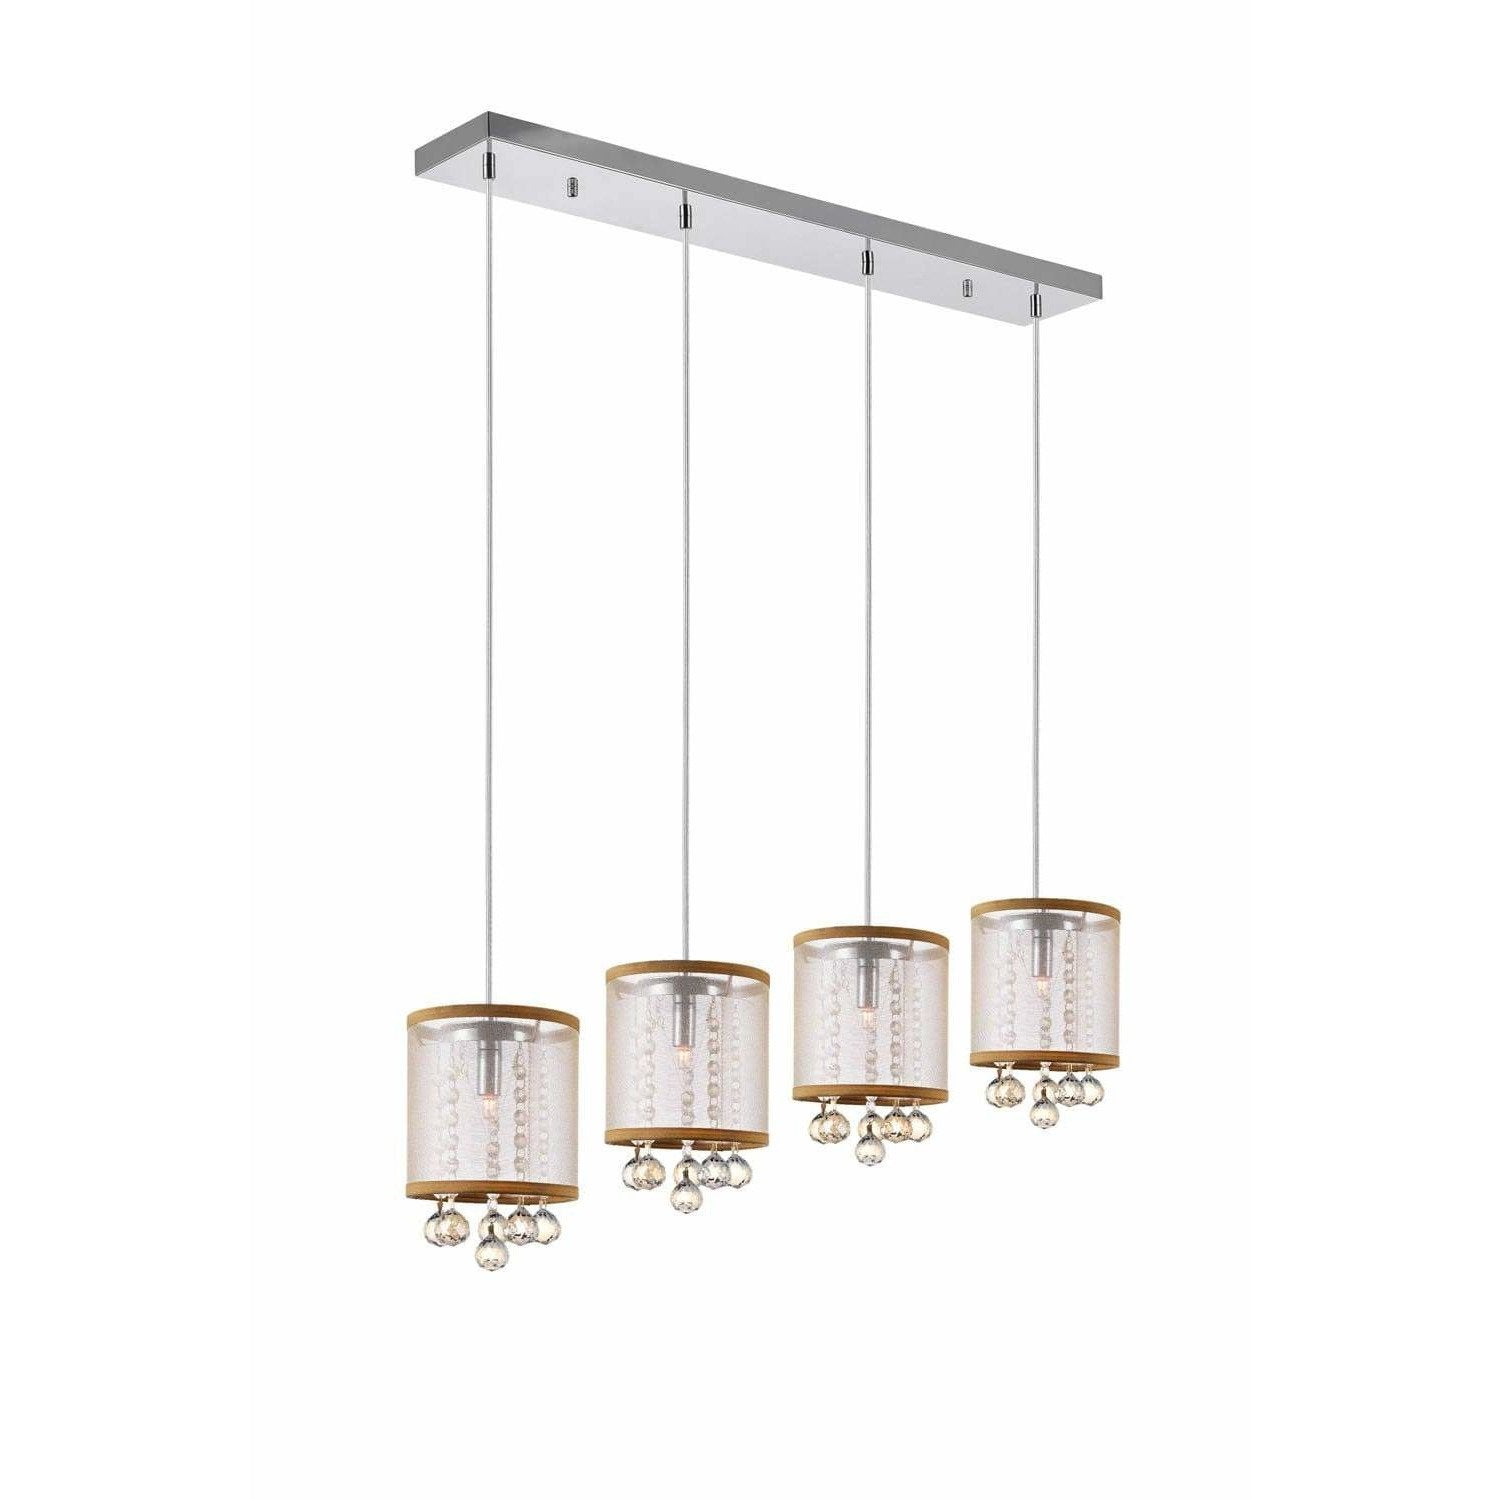 CWI Lighting Pendants Chrome / K9 Champagne Radiant 4 Light Multi Light Pendant with Chrome finish by CWI Lighting 5062P33C-4 (Chp + G)